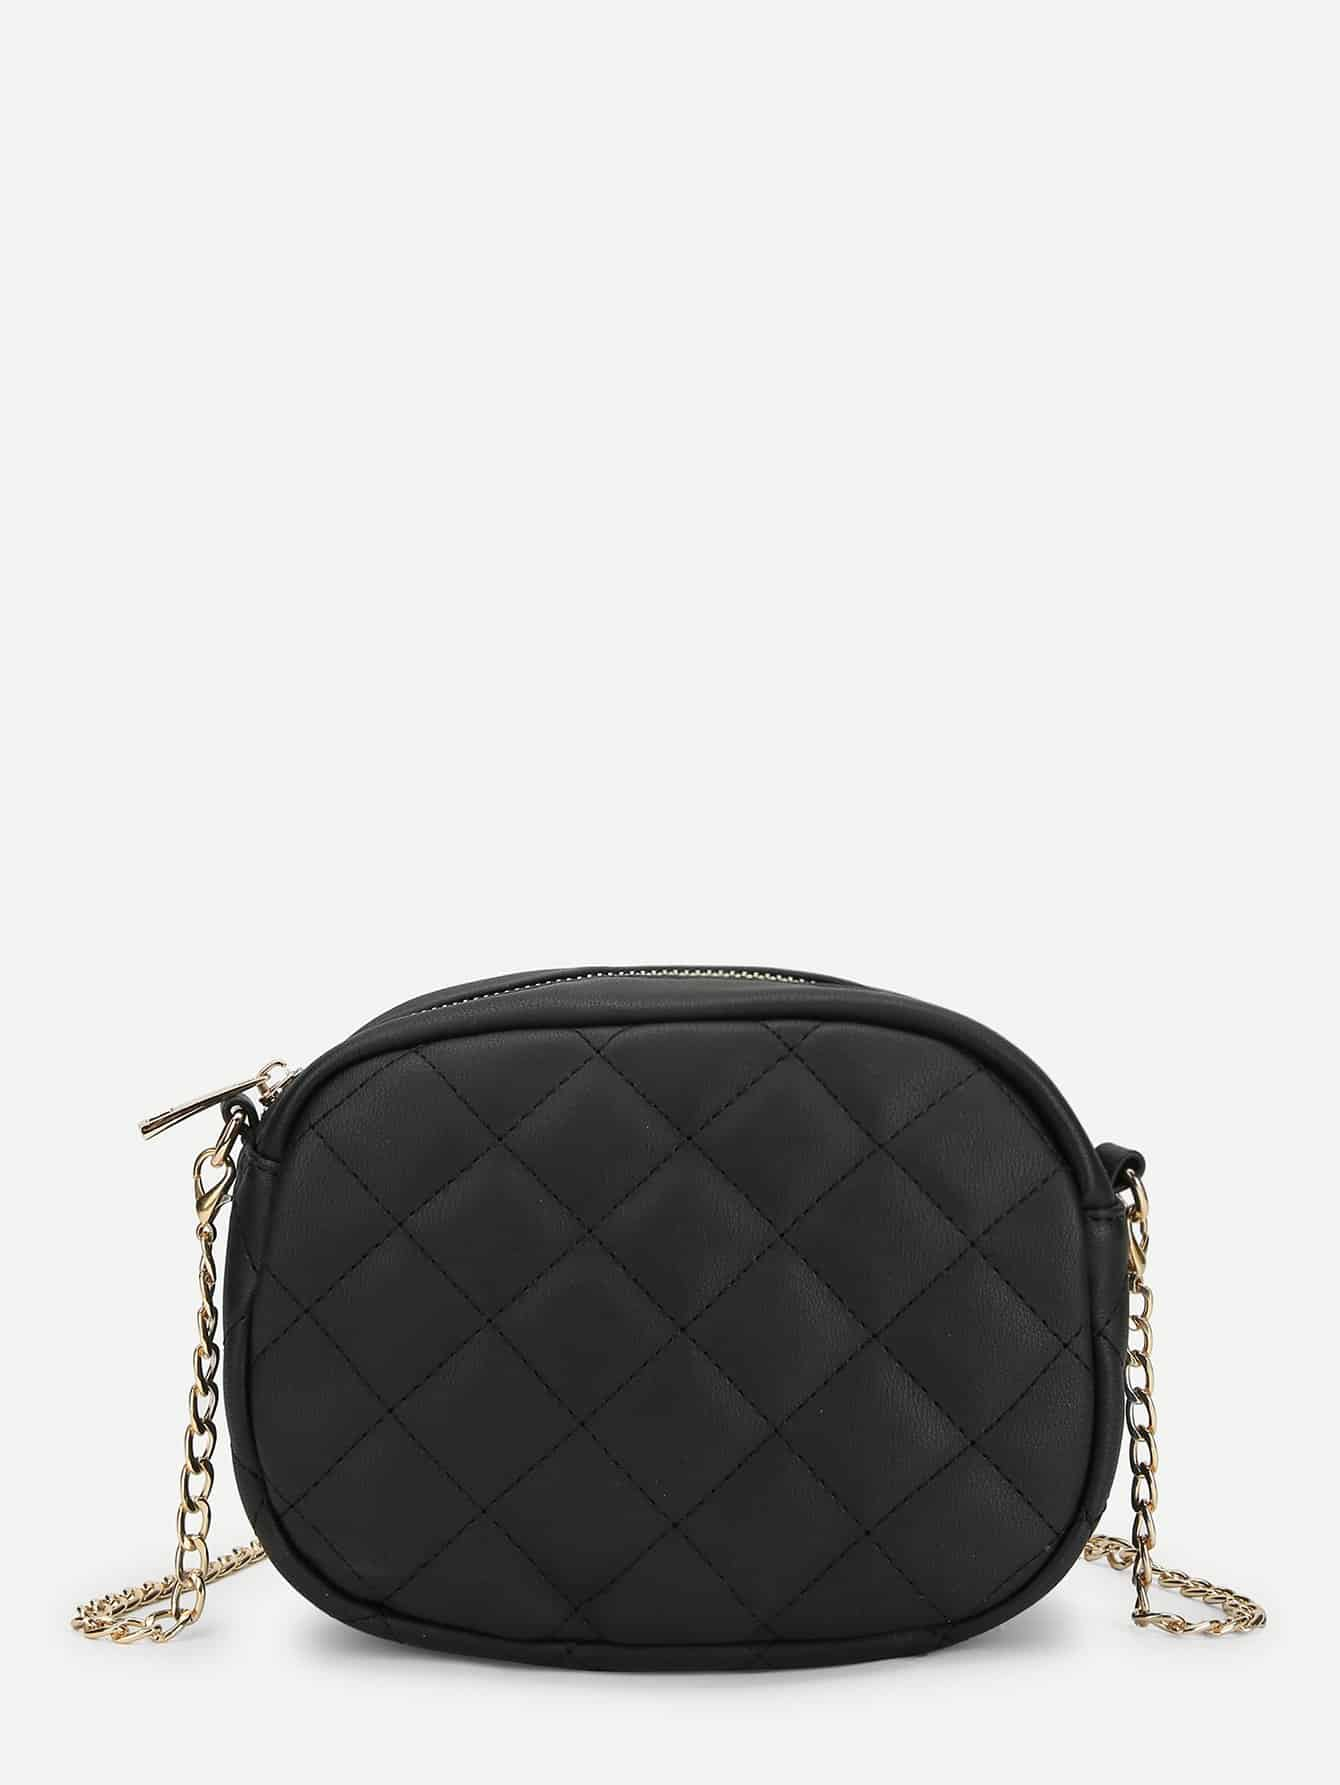 Quilted Crossbody Chain Bag dark green velvet twistlock closure quilted chain bag